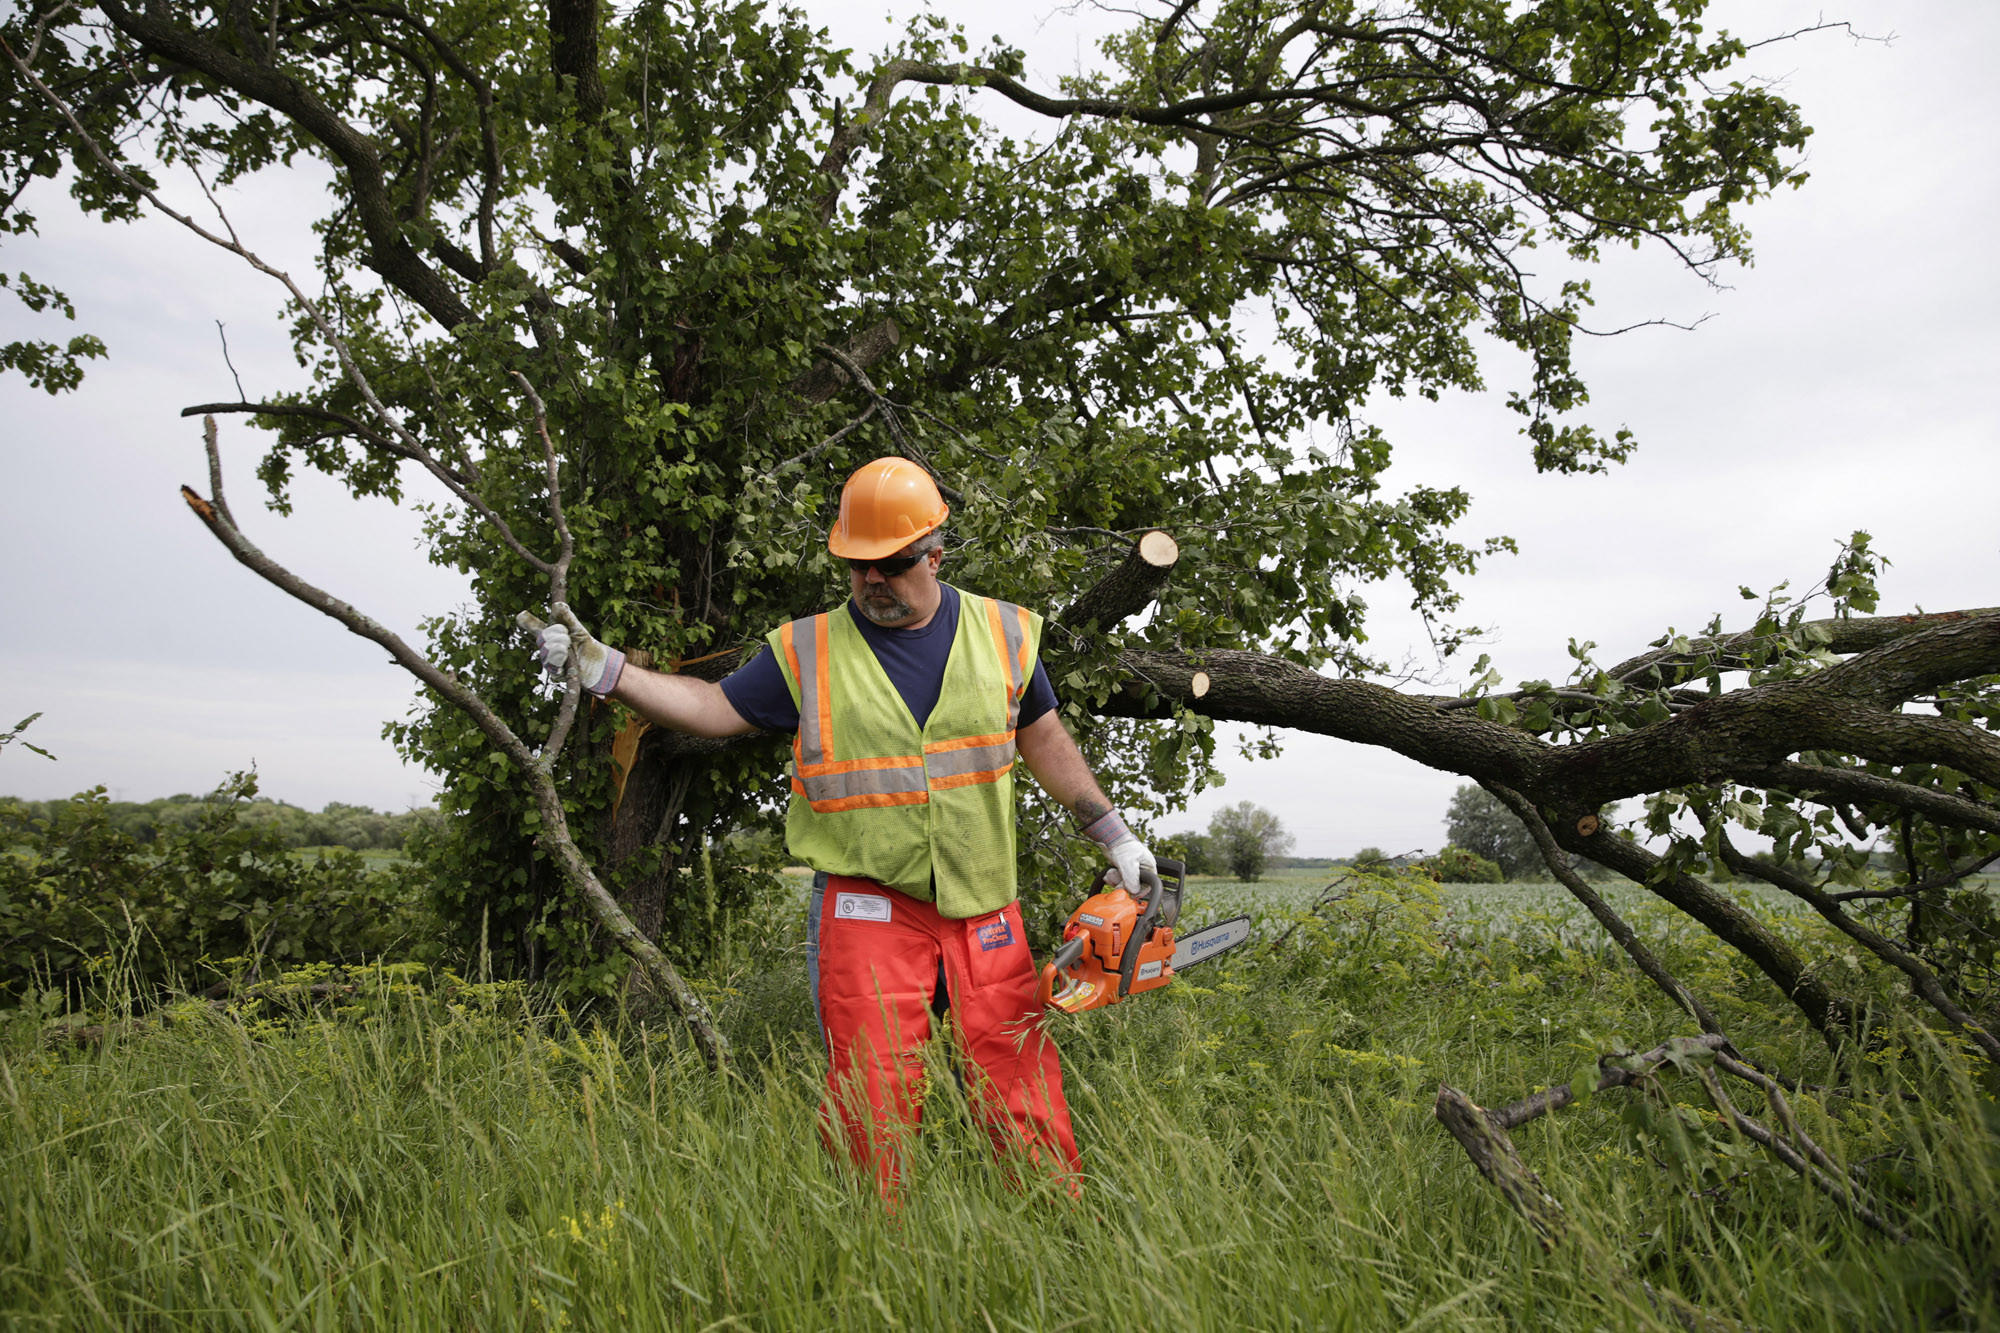 IDOT workers clear tree branches from the shoulder of Route 176 in Crystal Lake following an early morning storm.